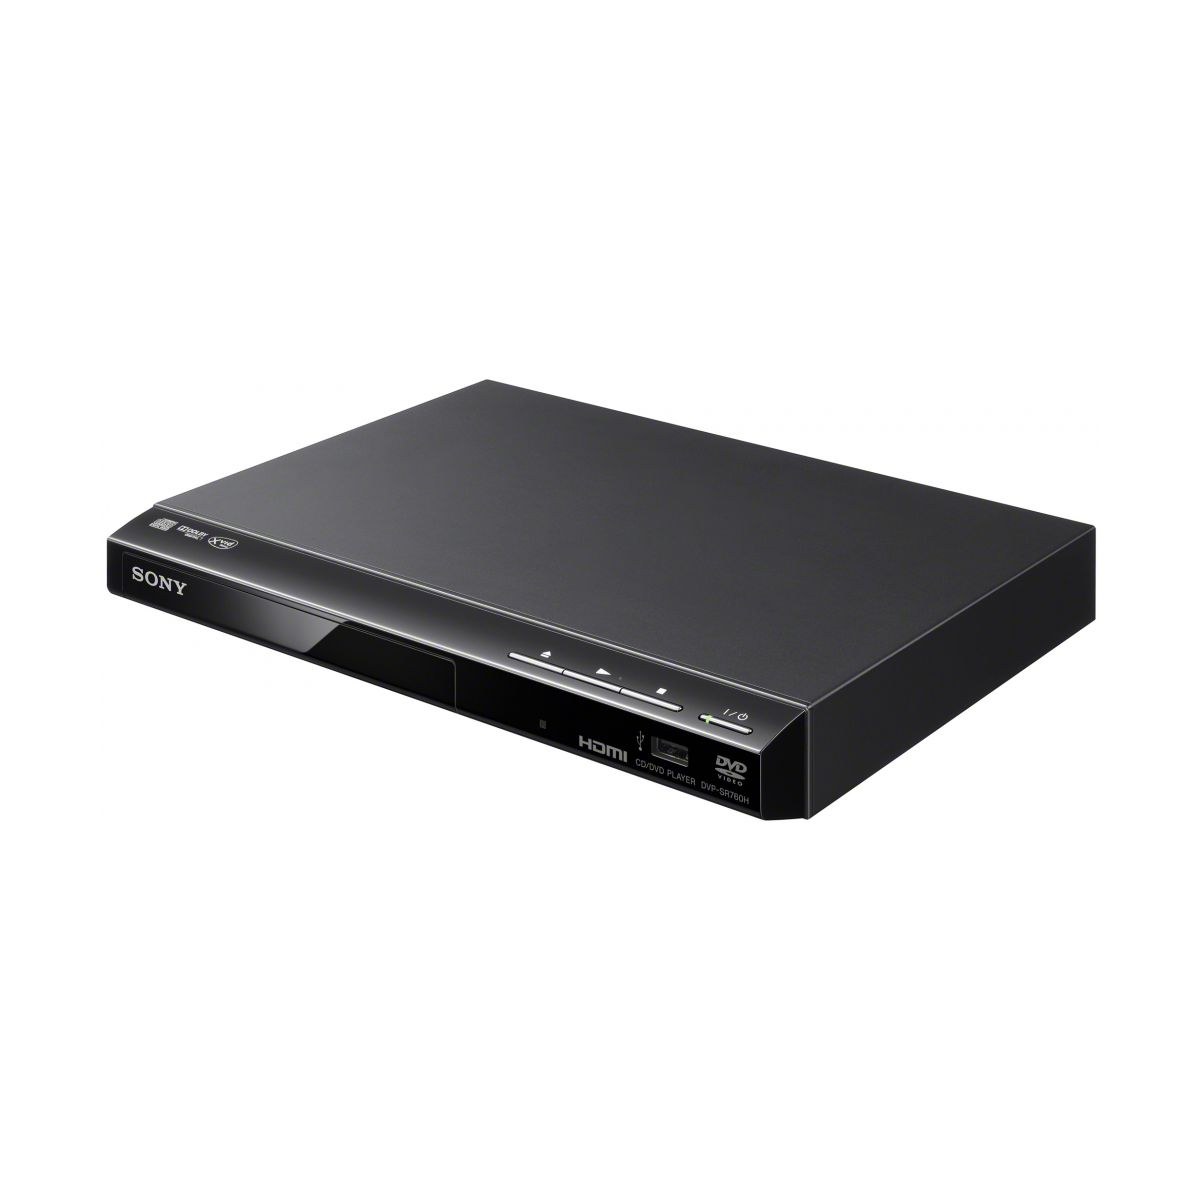 Lecteur dvd sony dvpsr760hb (photo)